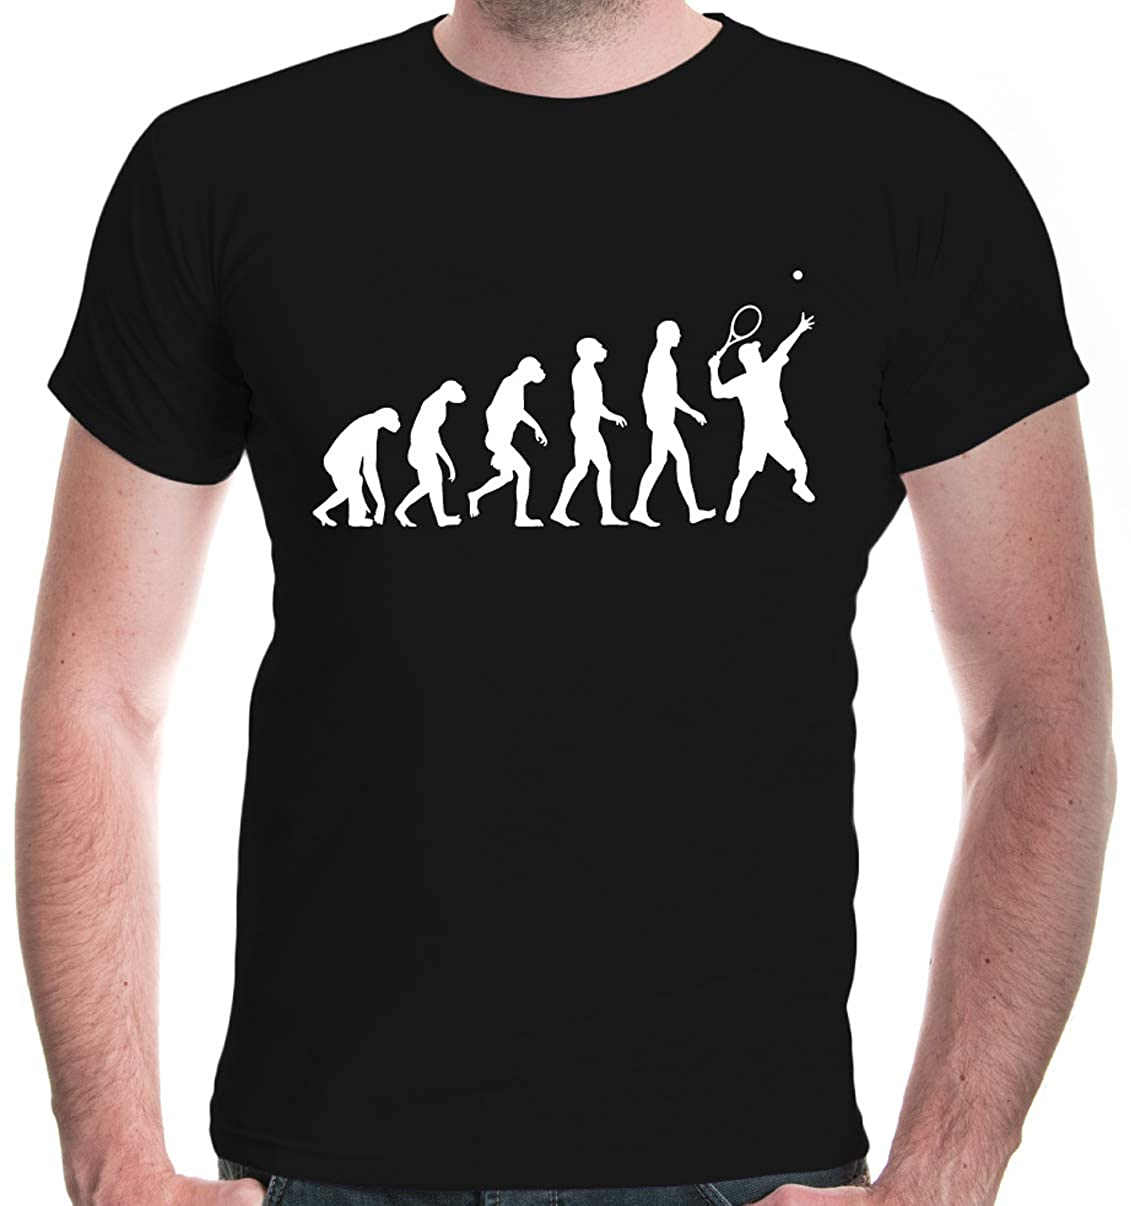 Buxsbaum S Tshirt The Evolution Of Tennis